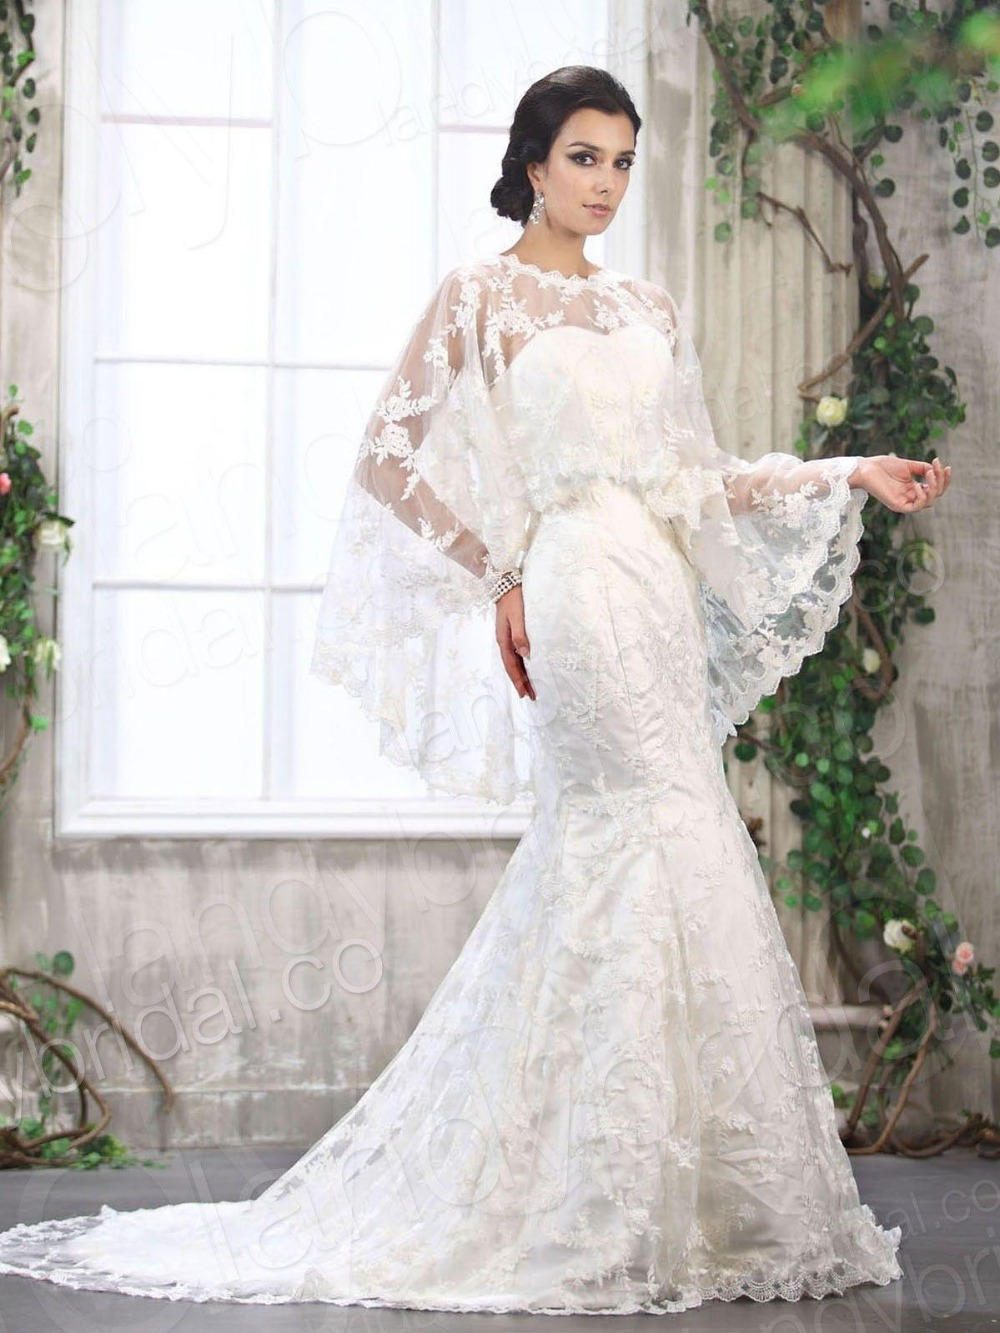 Hot Sell Bridal Lace Wedding Shawl Wrap Wraps Jacket Cape Bolero Gown For Party Dresses In Jackets